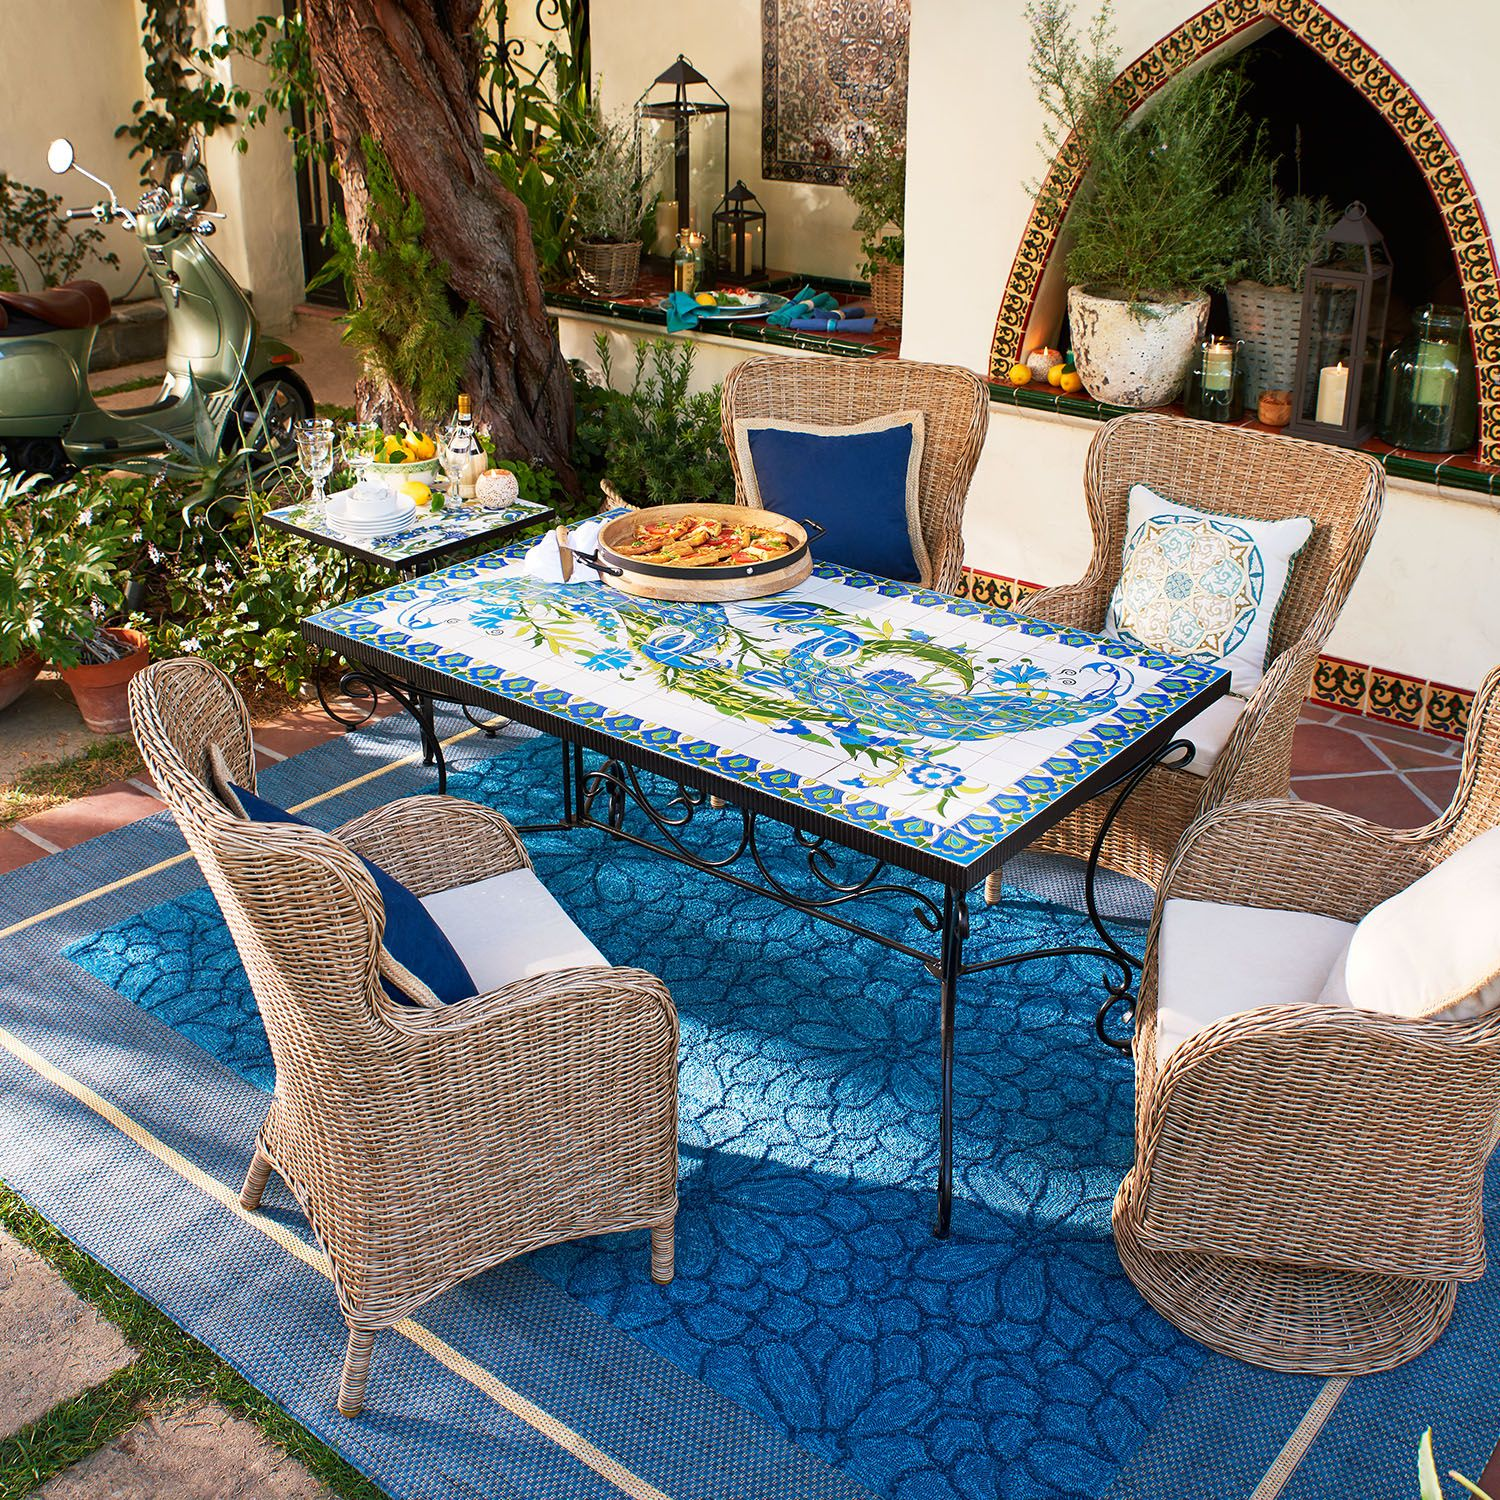 coastal bohemian dining area with woven armchairs.